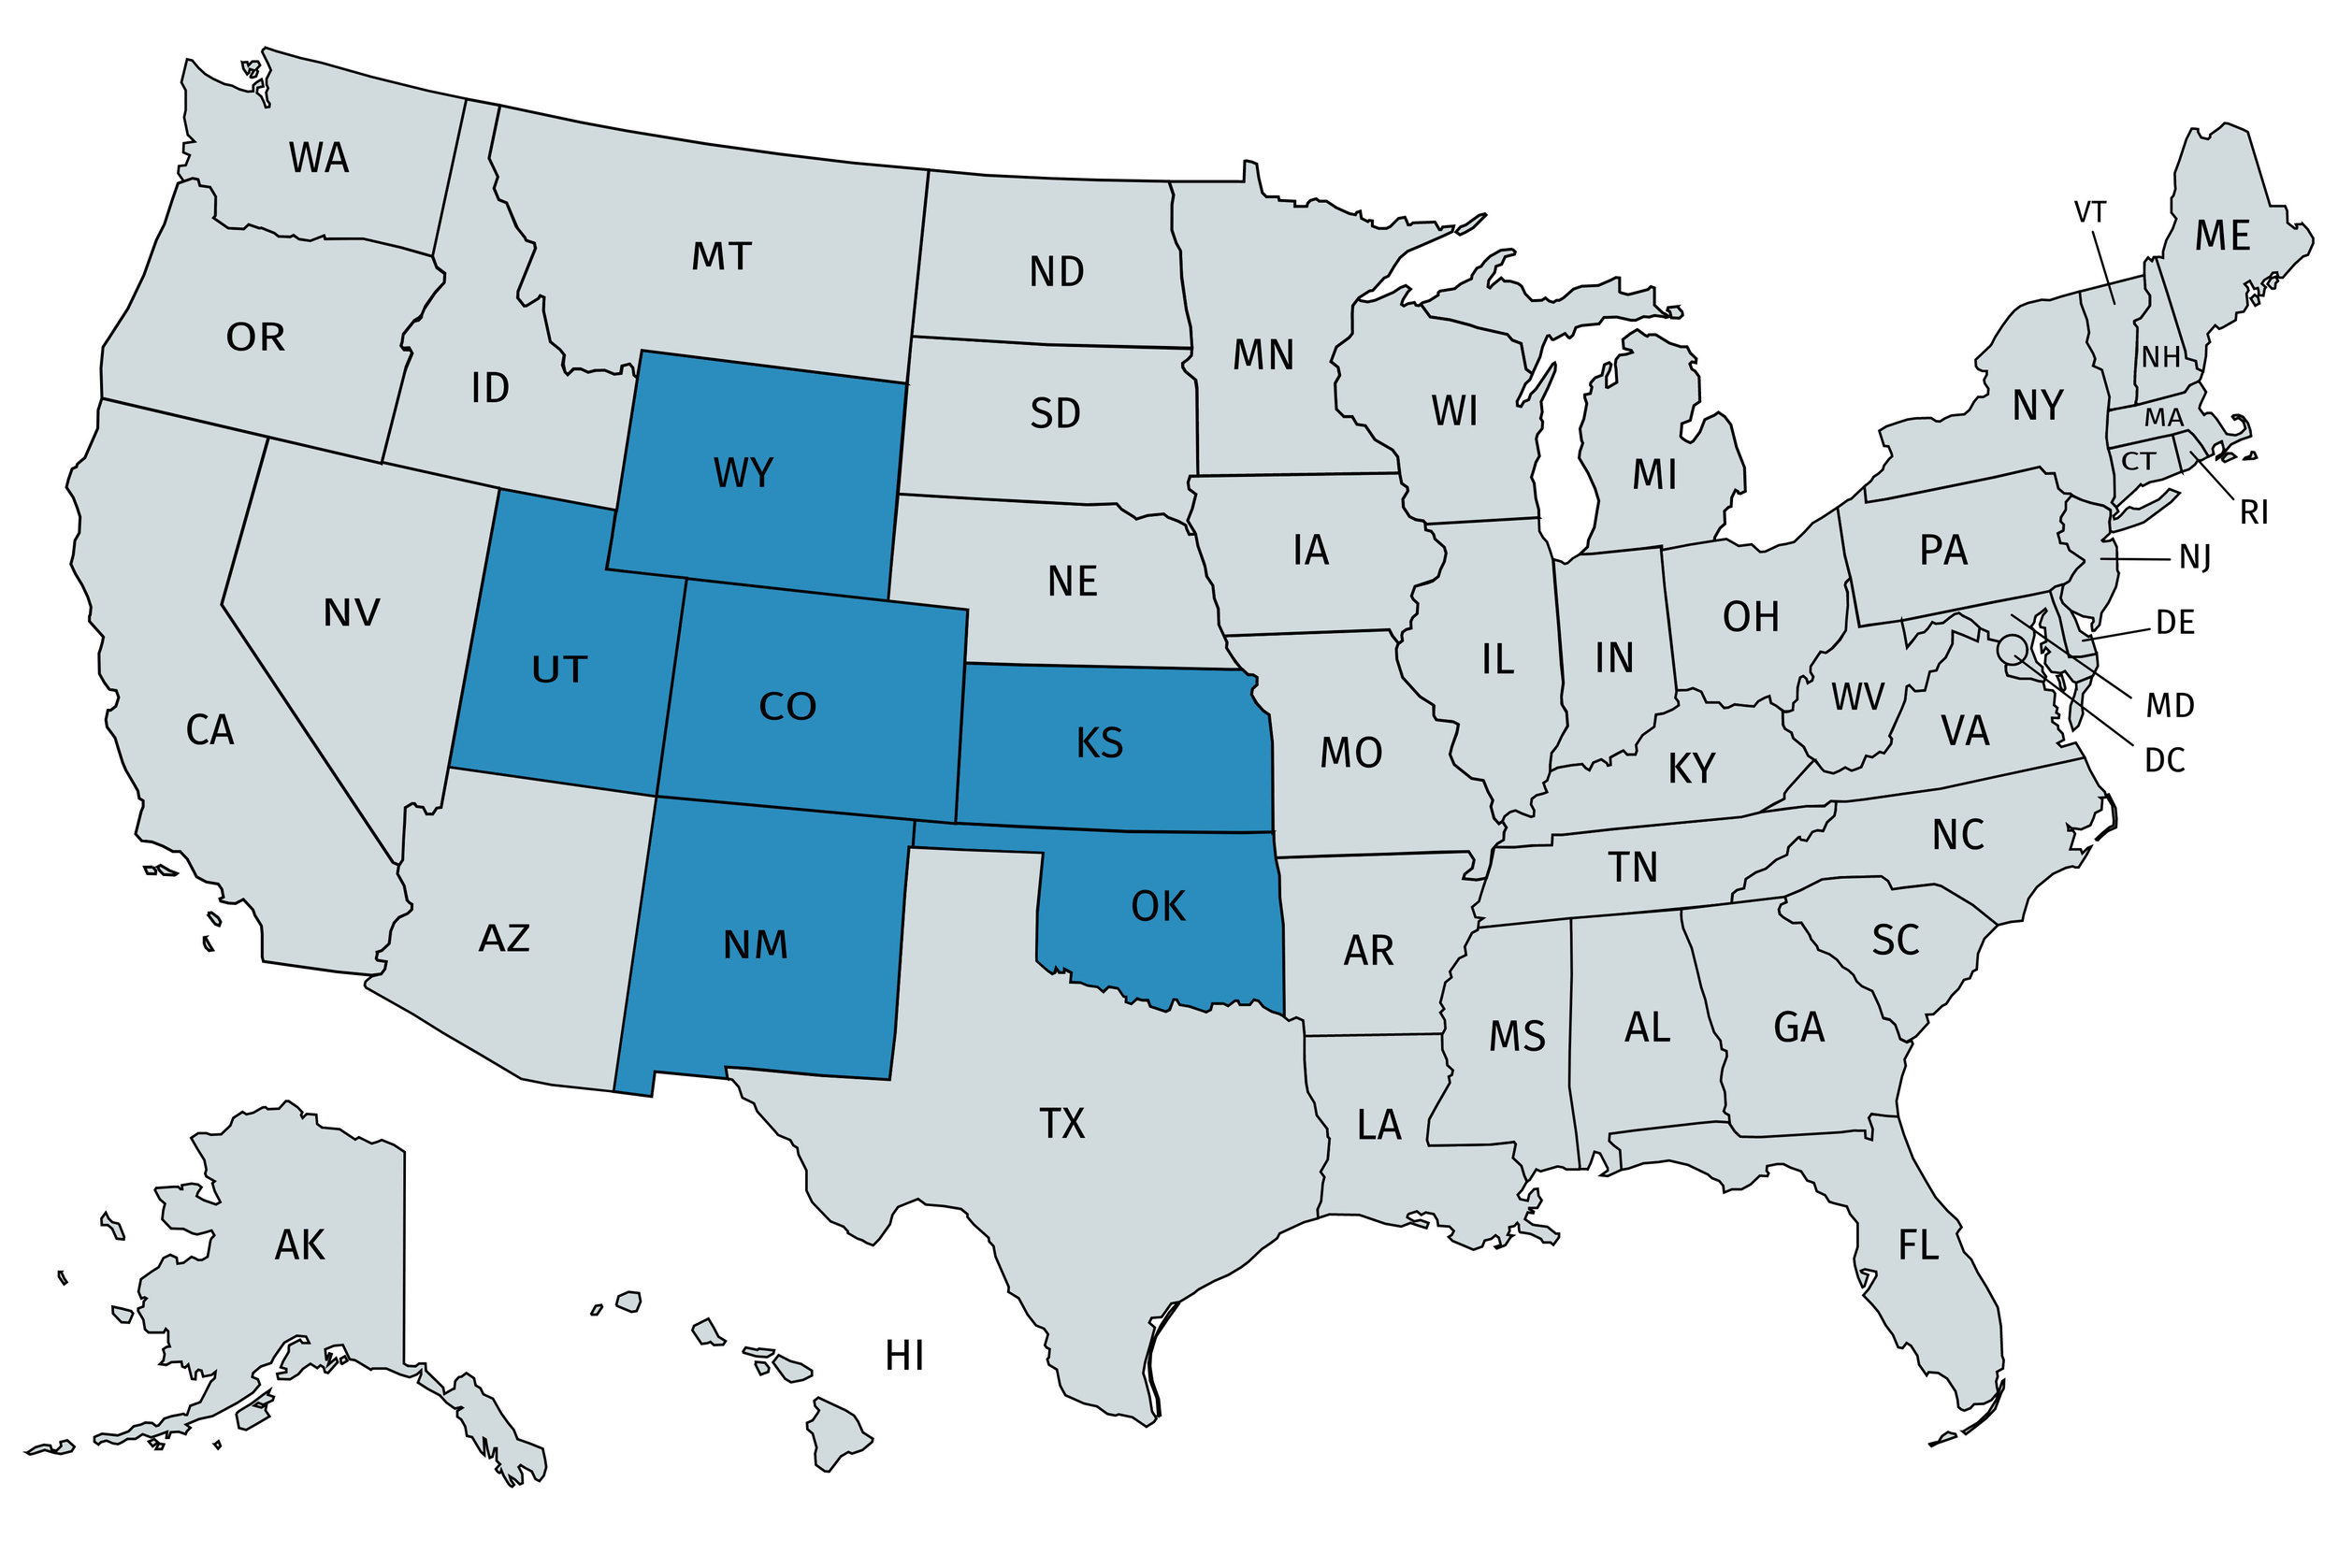 Courts below: 10th Circuit Courts of Appeals